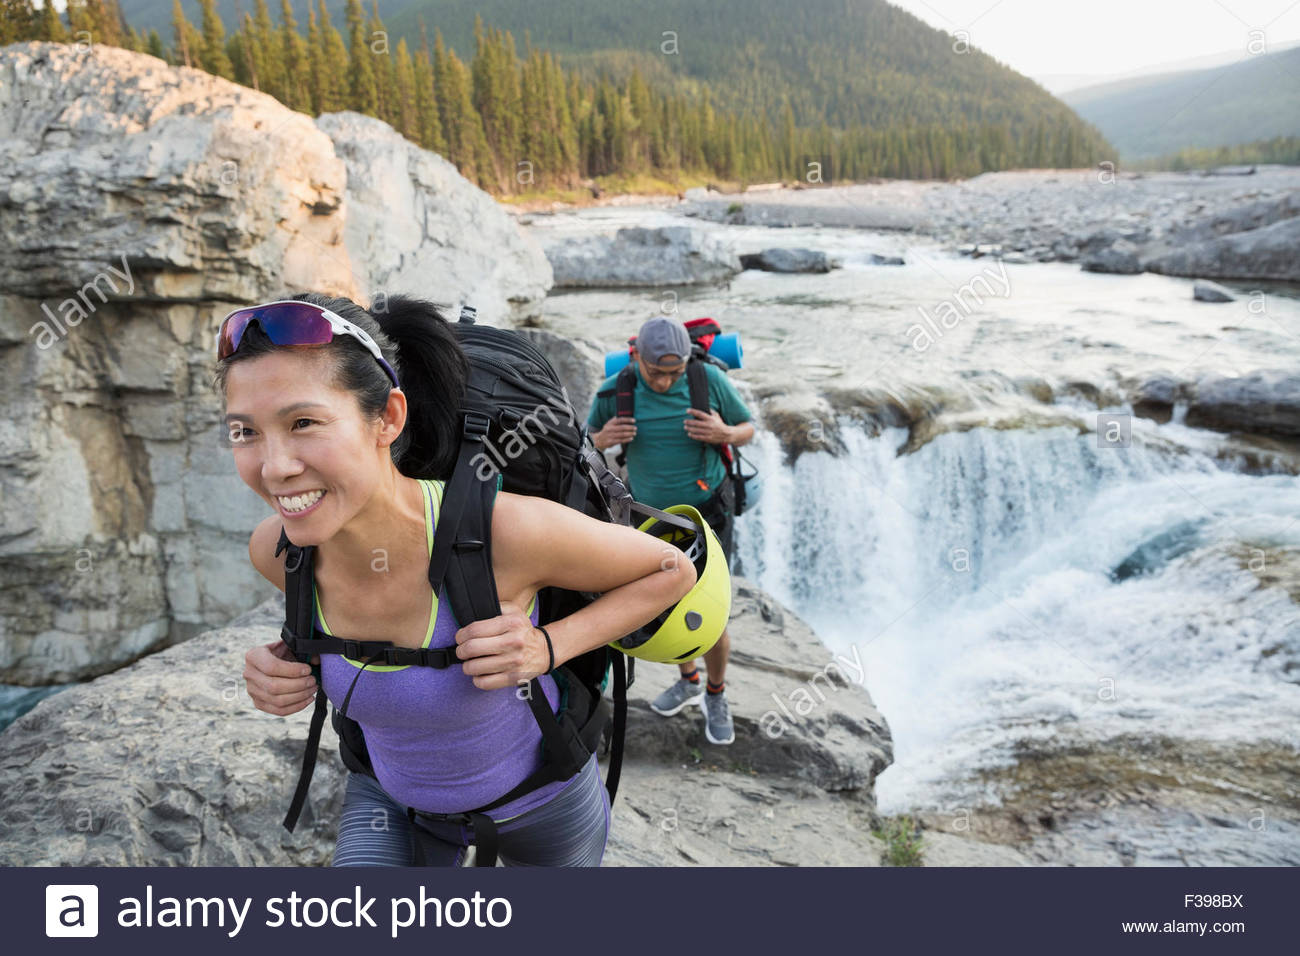 Female hiker with backpack près de craggy waterfall Banque D'Images